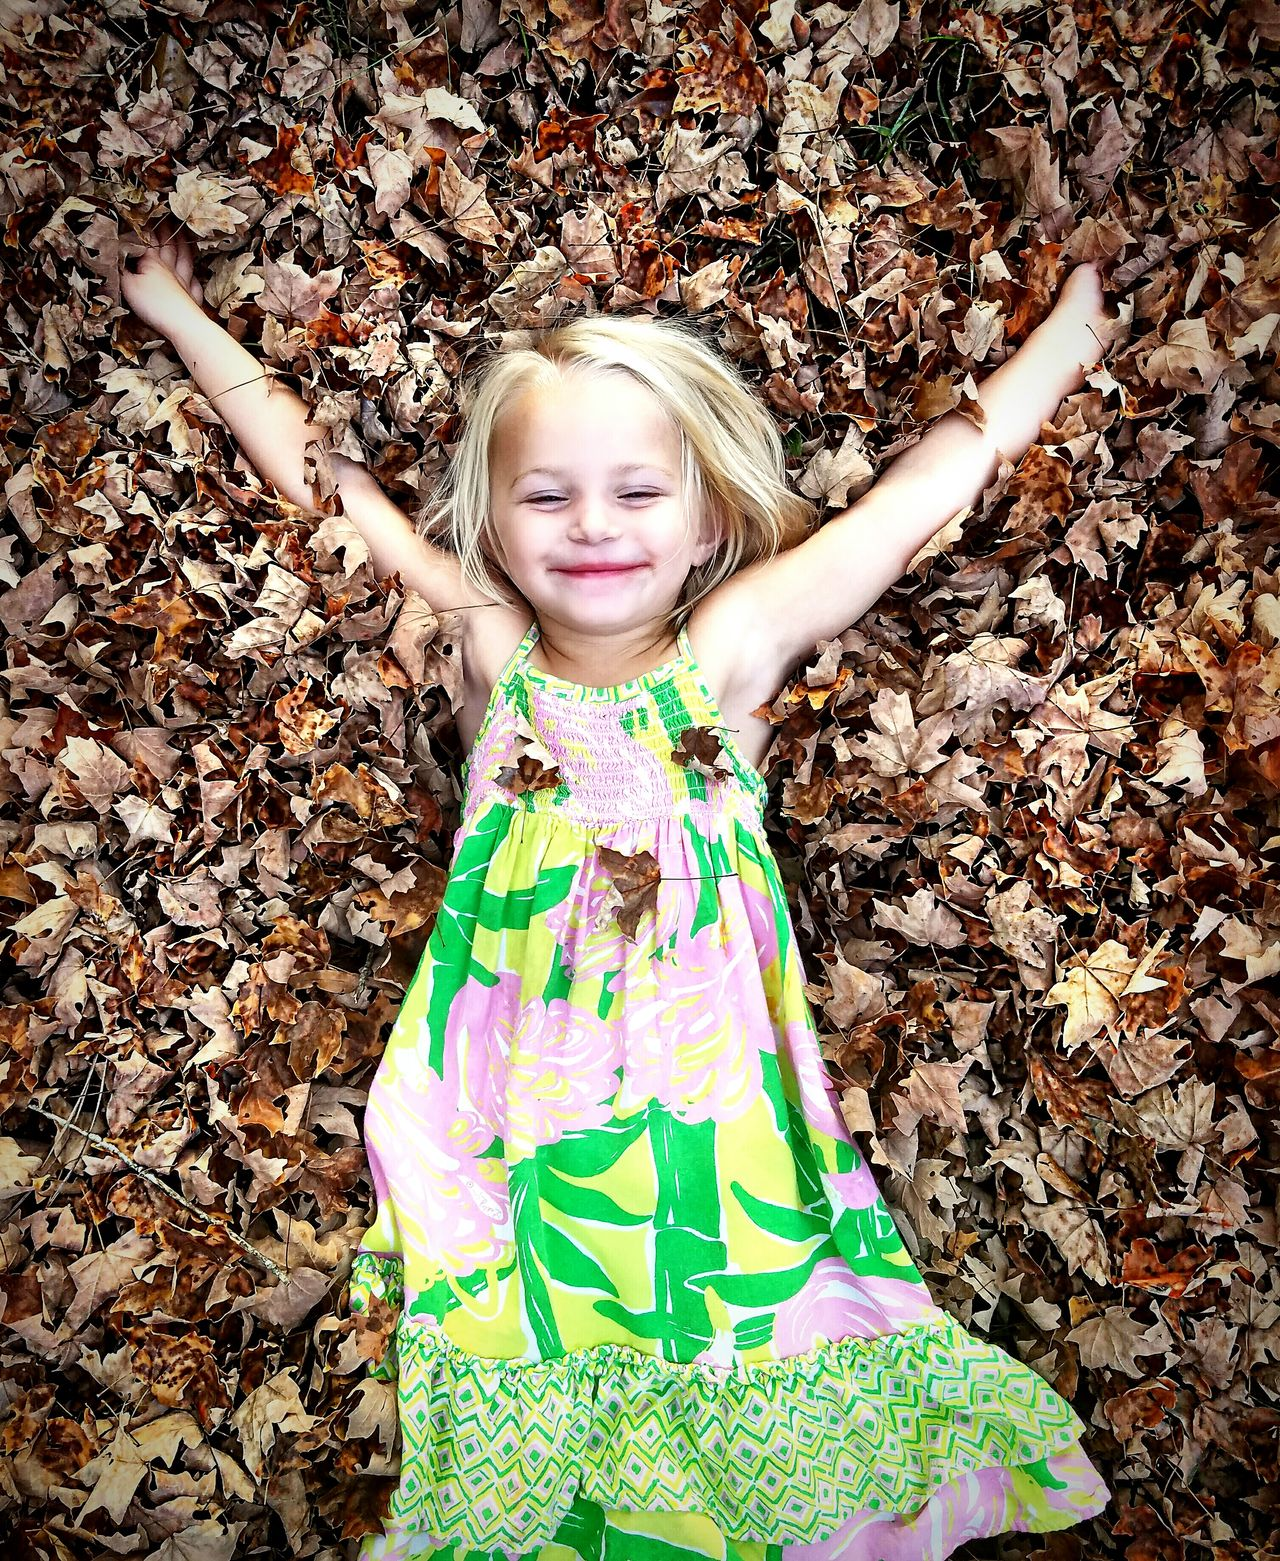 Charlotte Fall Leaves Fall Colors North Carolina MyGIRL Childhood Blond Hair Smiling Outdoors Cheerful Multi Colored Happiness Growing Up So Fast Daddyslittlegirl Children Photography MyGIRL